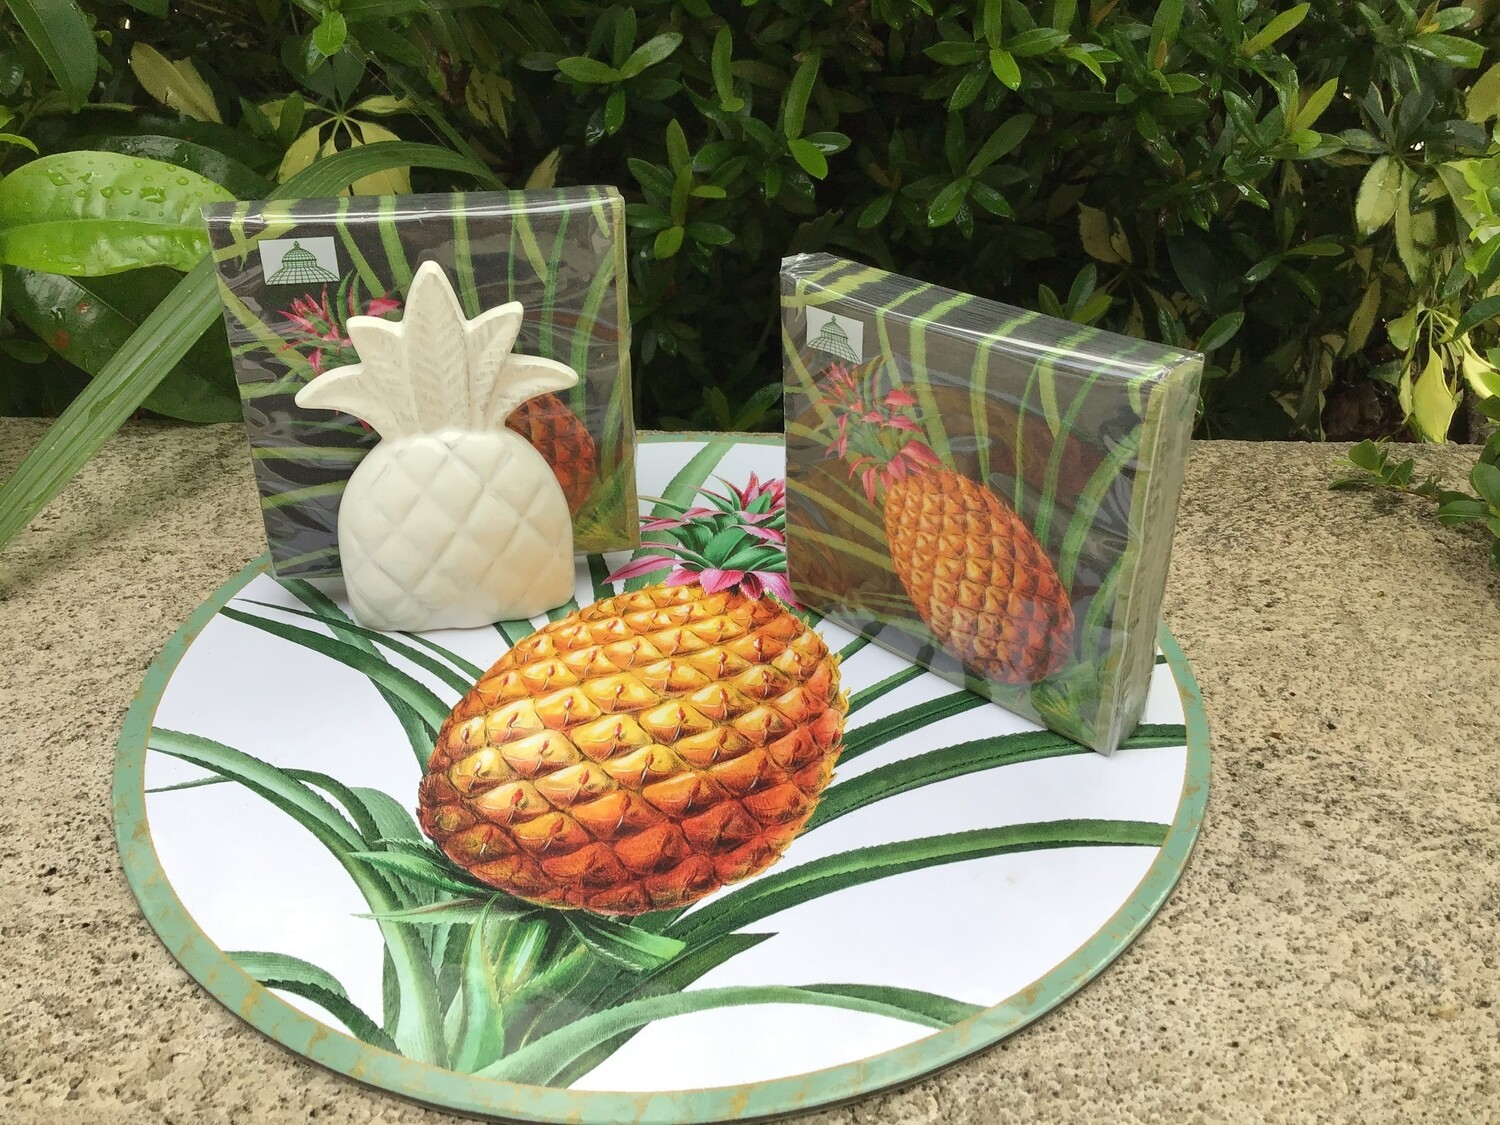 Dual Purpose Pineapple Holder